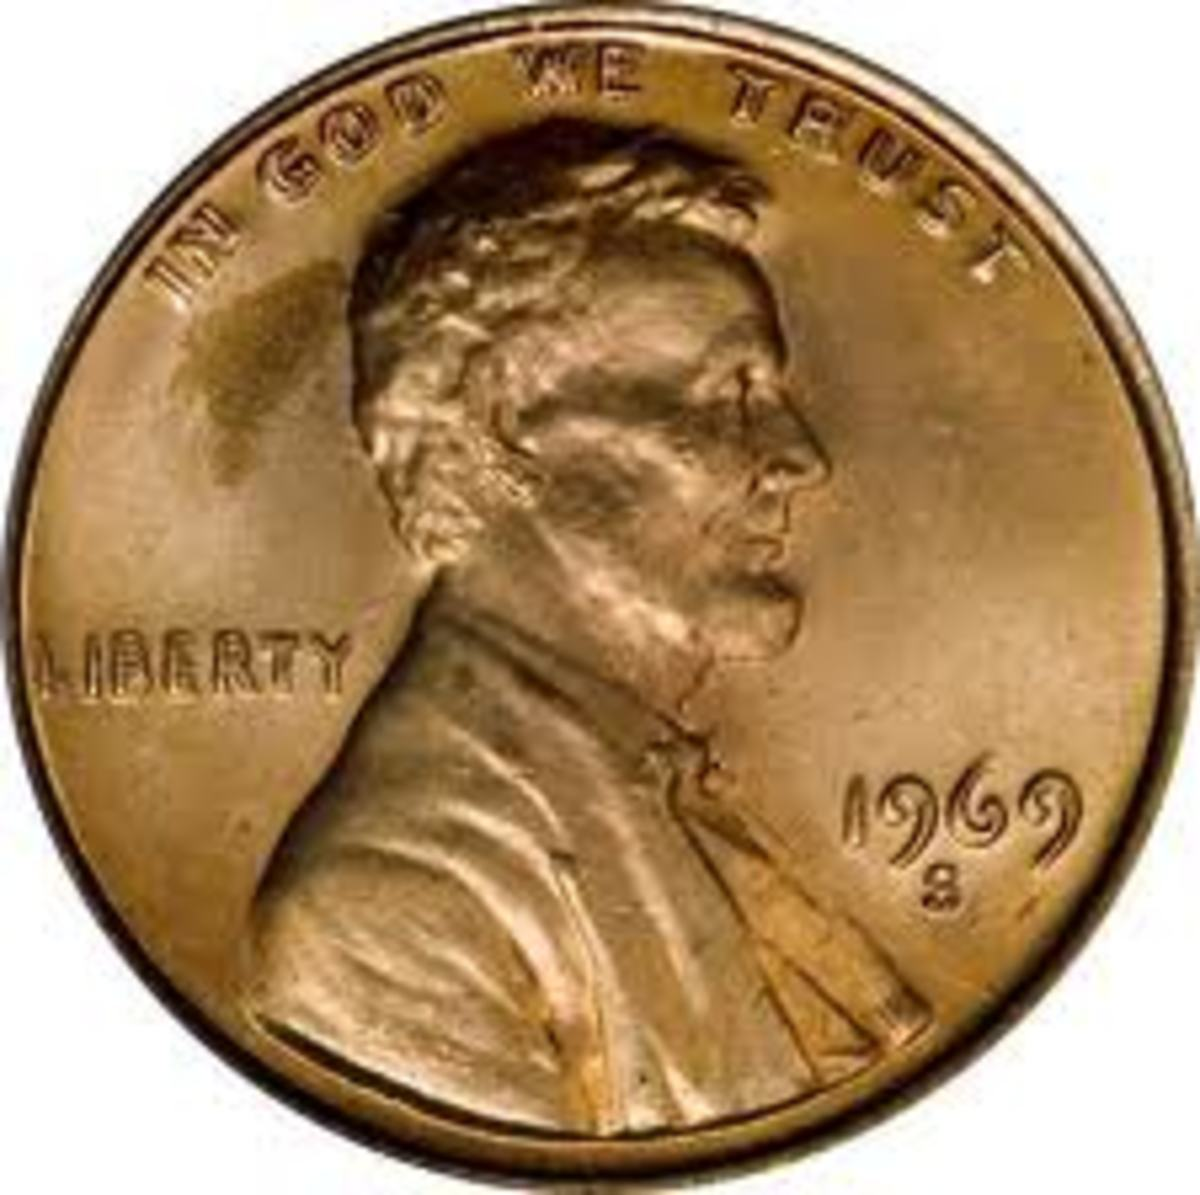 The 1969-S penny is also a doubled die. You can clearly see it has been stamped twice.